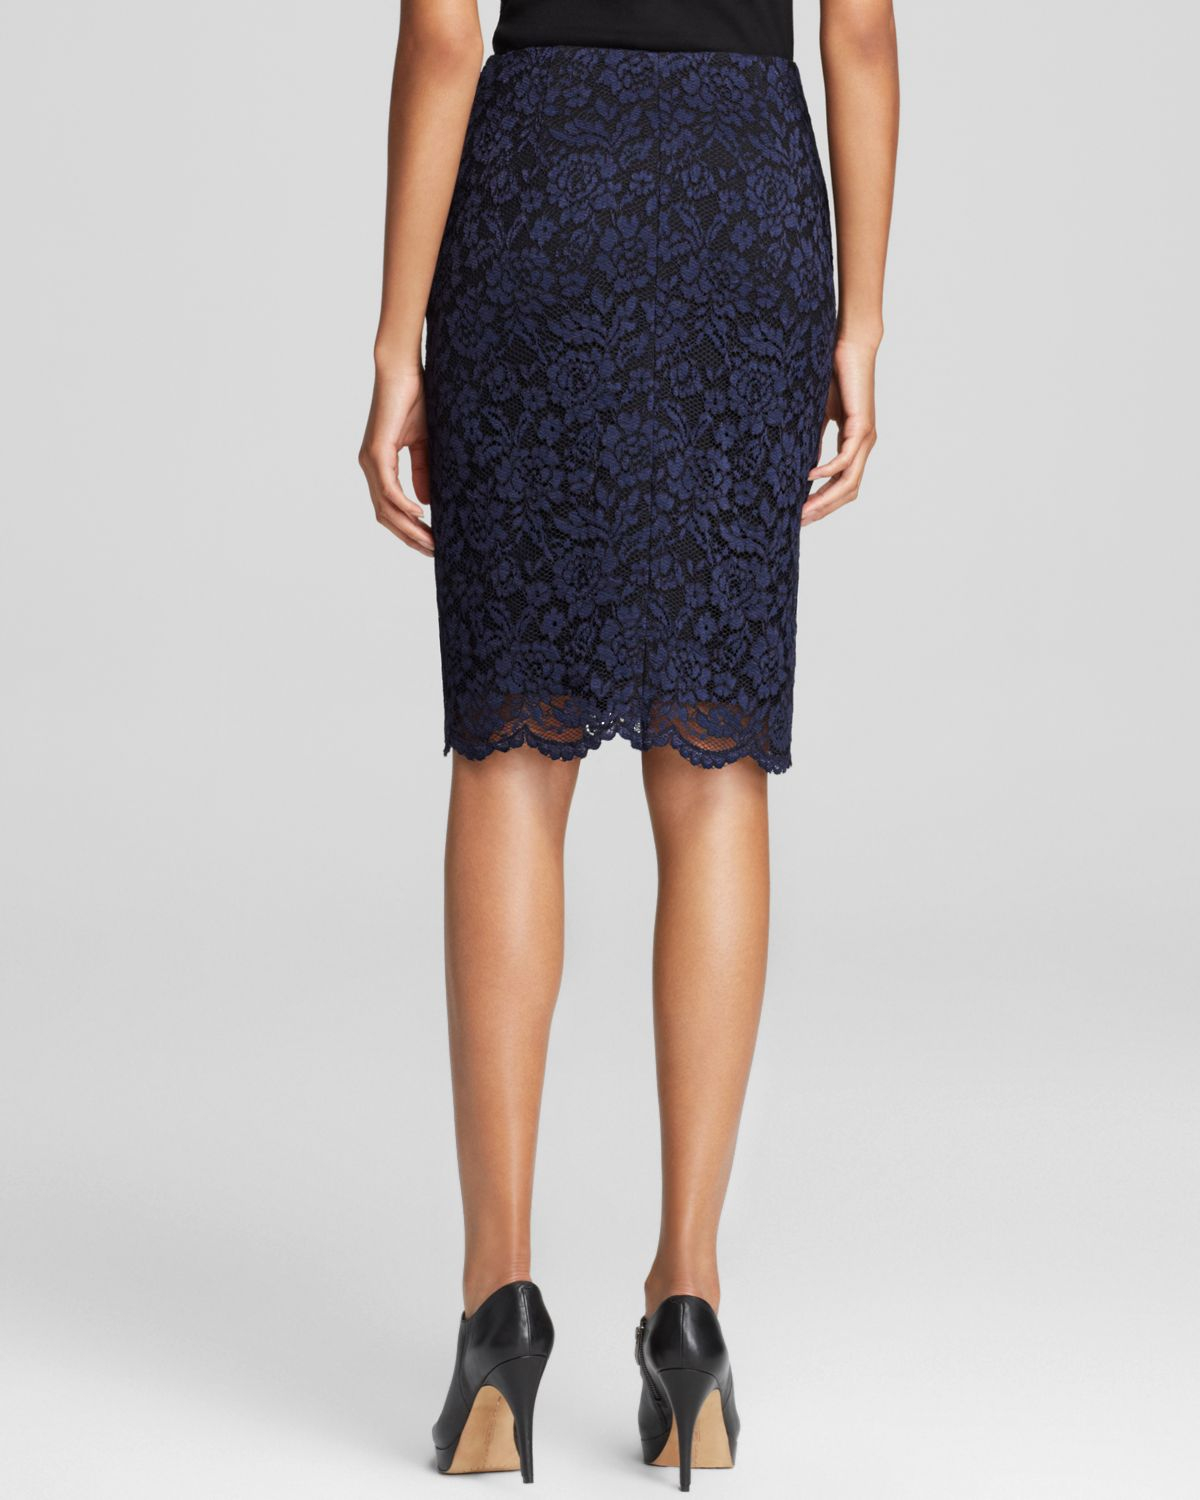 vince camuto floral lace pencil skirt in black lyst